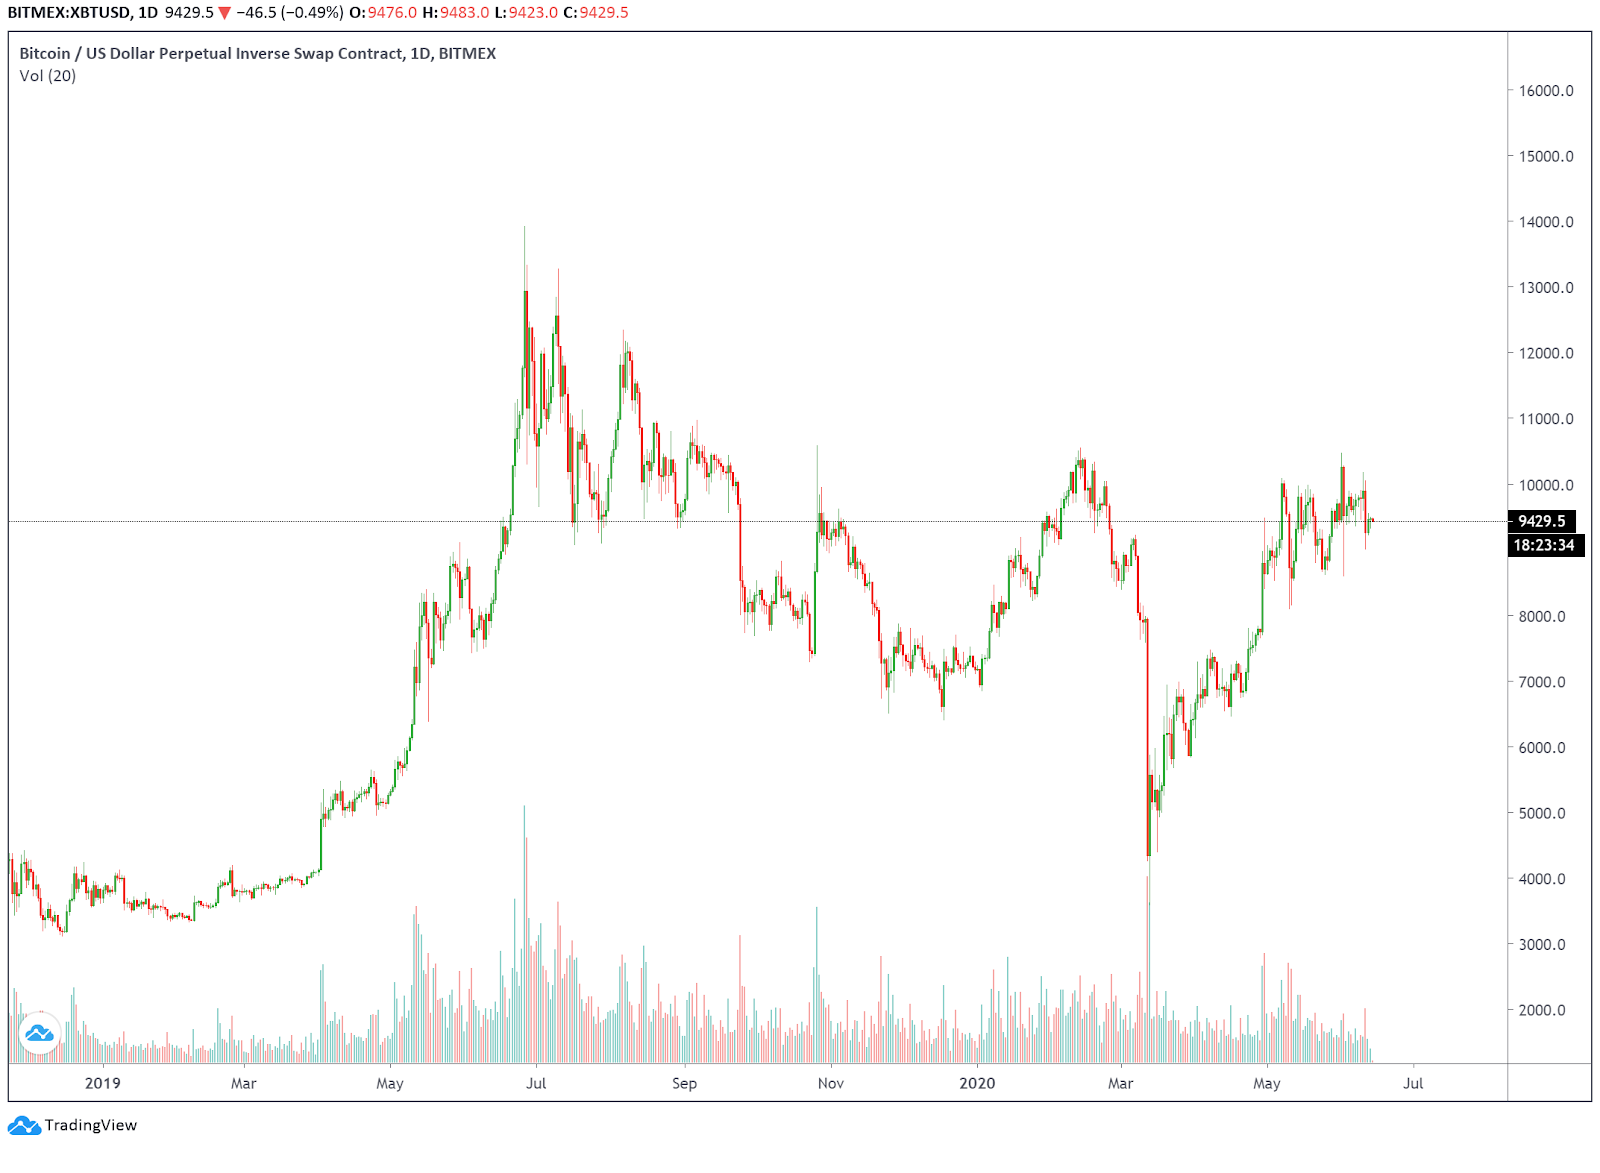 Bitcoin price sees a triple top on the daily chart. Source: Tradingview